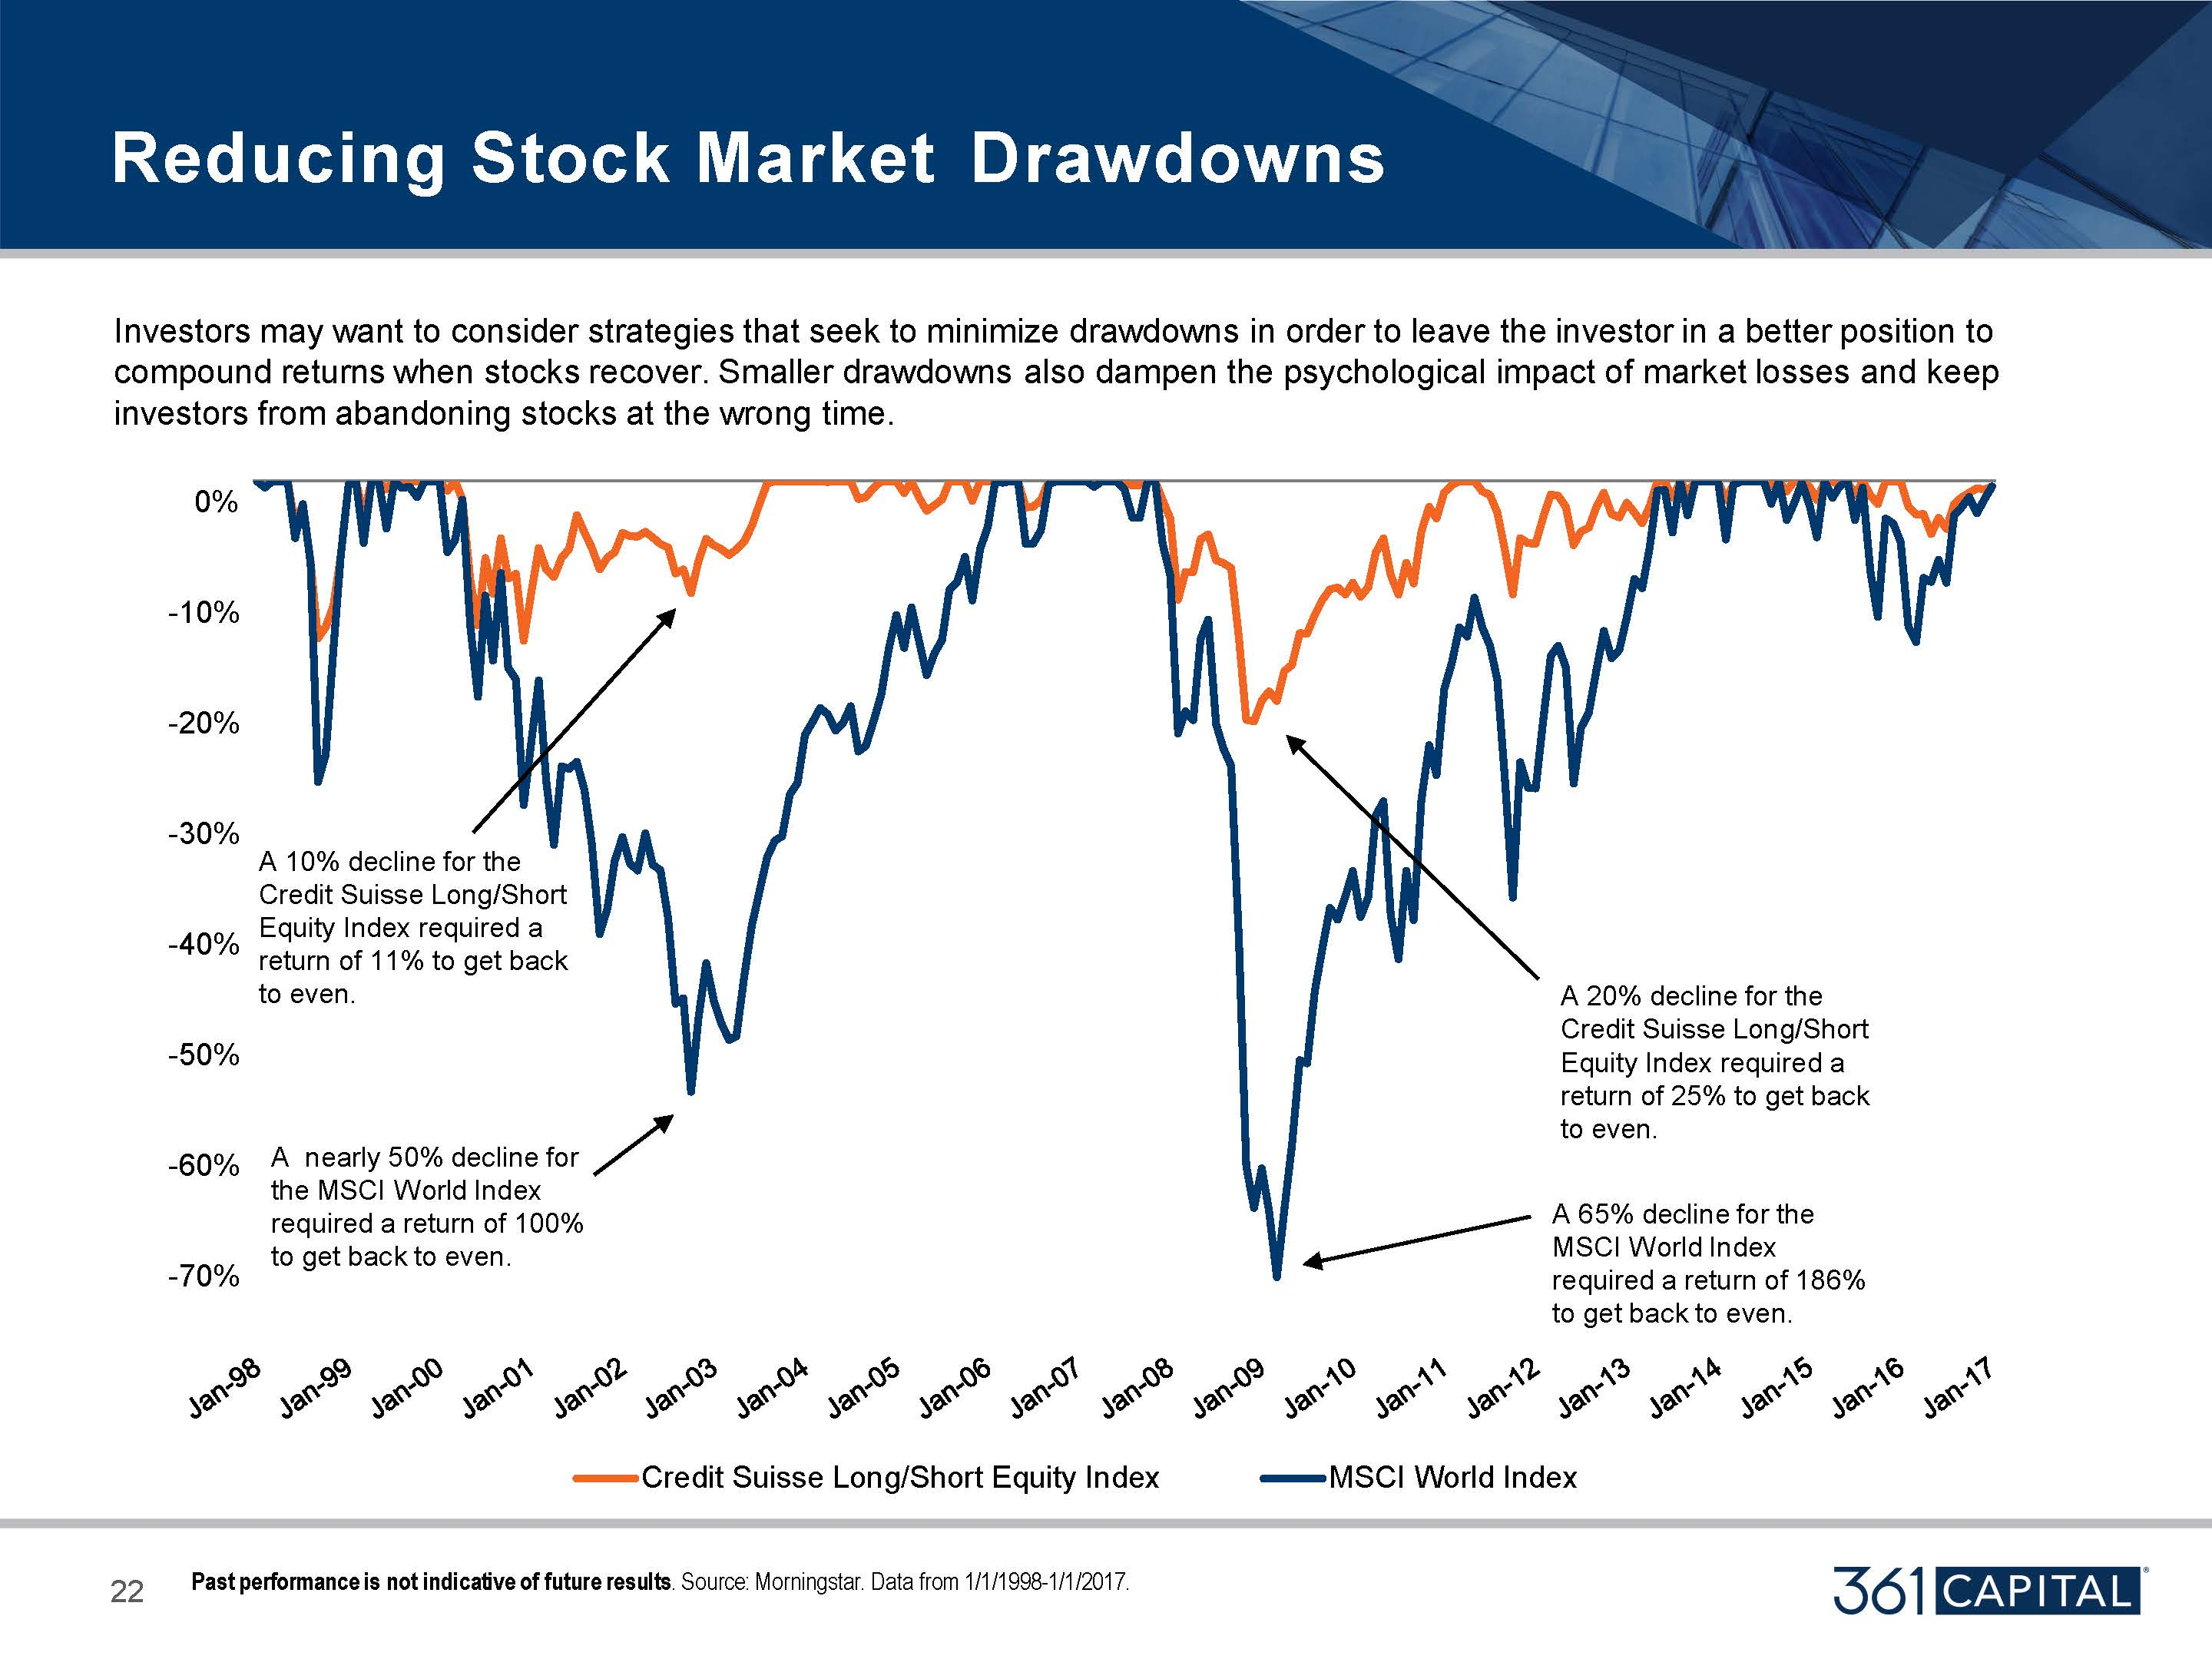 Investors may want to consider strategies that seek to minimize drawdowns in order to leave the investor in a better position to compound returns when stocks recover